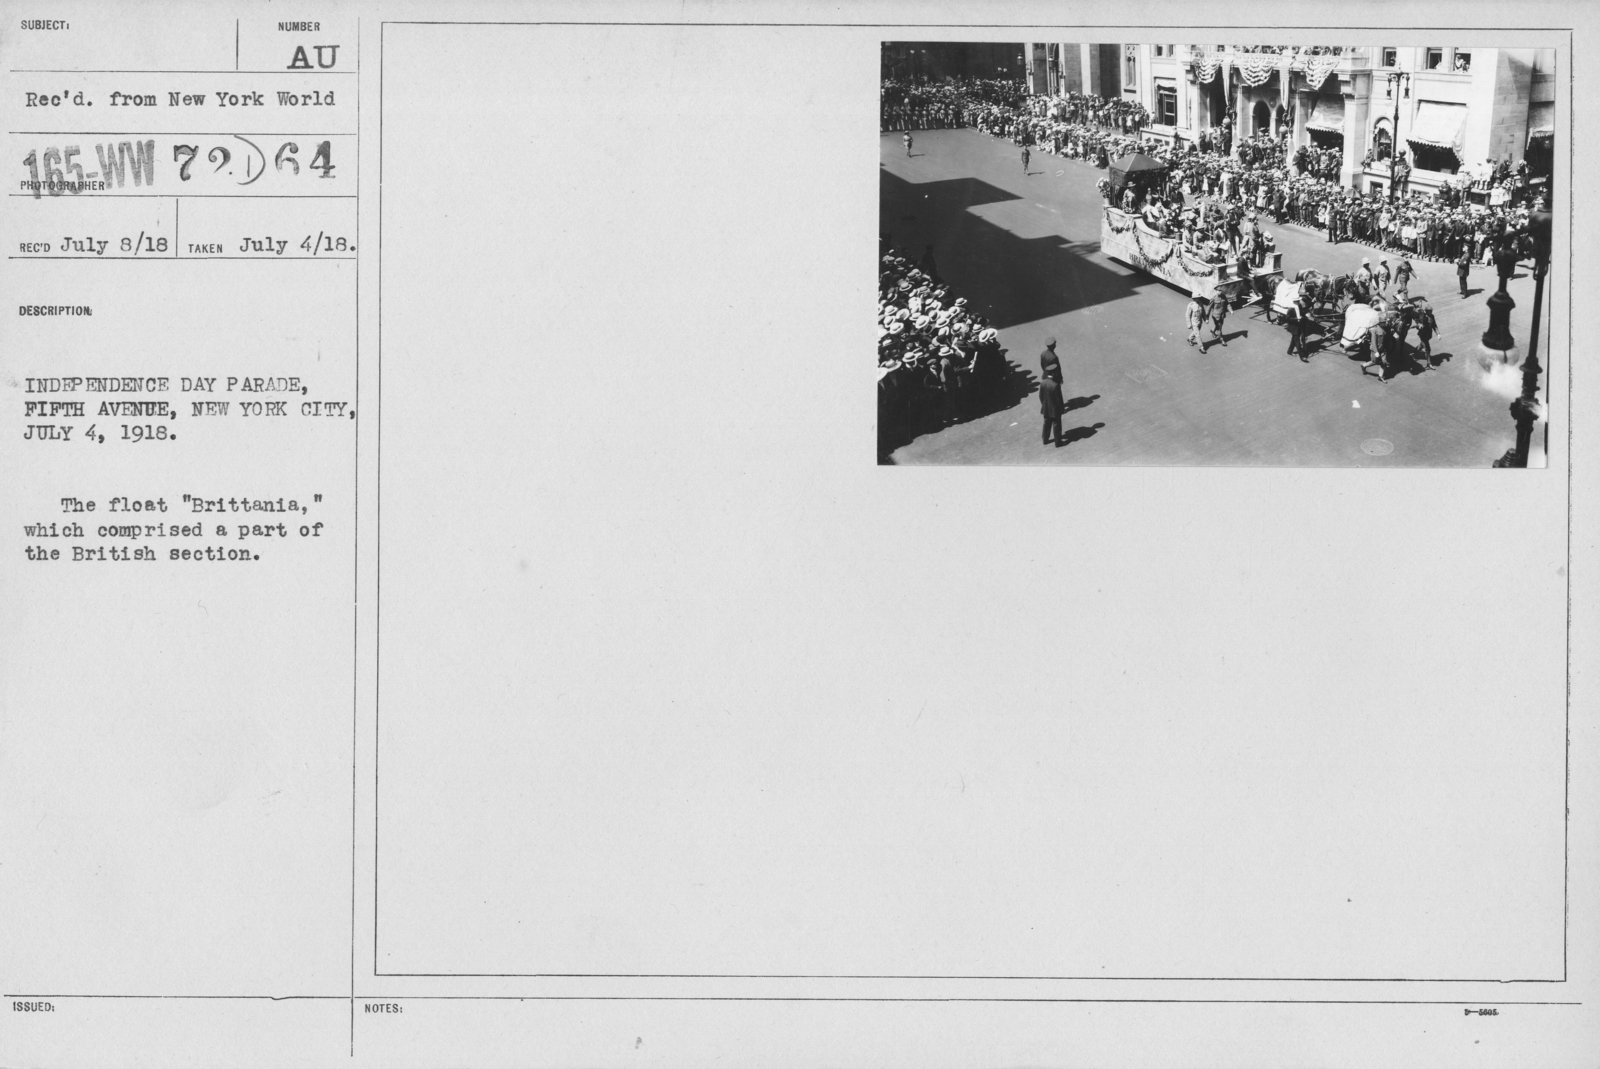 """Ceremonies - Independence Day, 1918 - Independence Day Parade, Fifth Avenue, New York City, July 4, 1918. The float """"Brittania,"""" which comprised a part of the British section"""